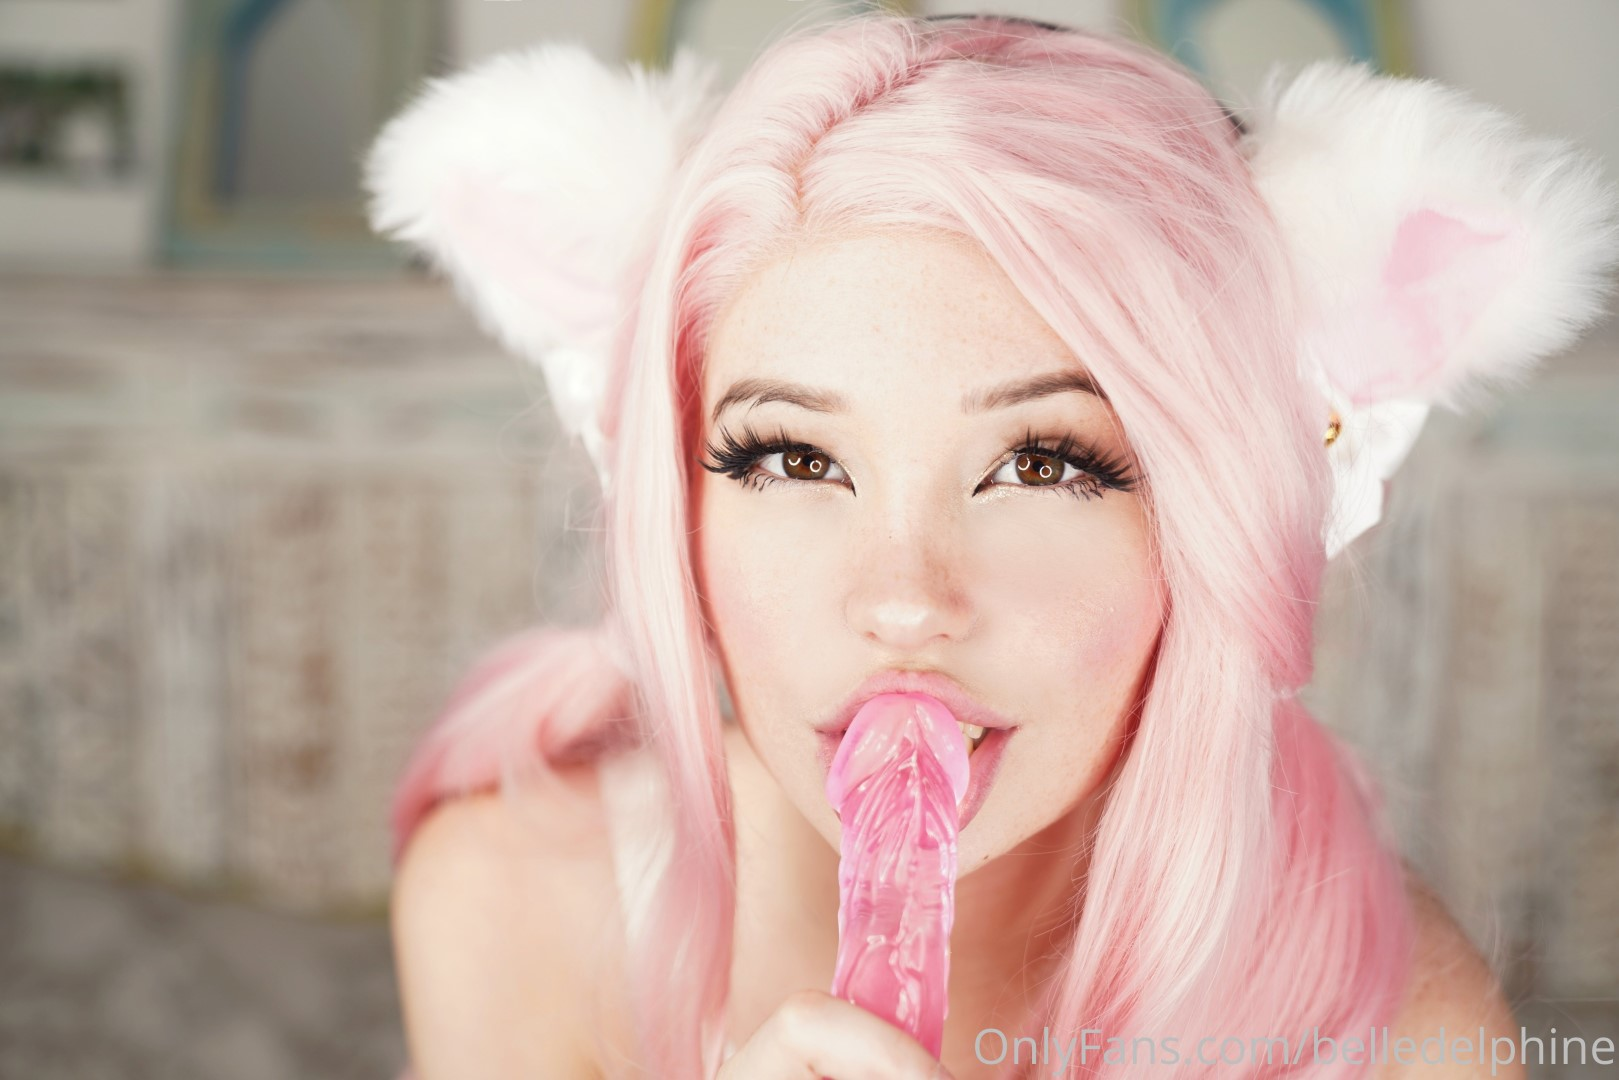 Belle Delphine Onlyfans Pink Dildo New Leaked Photos 0069